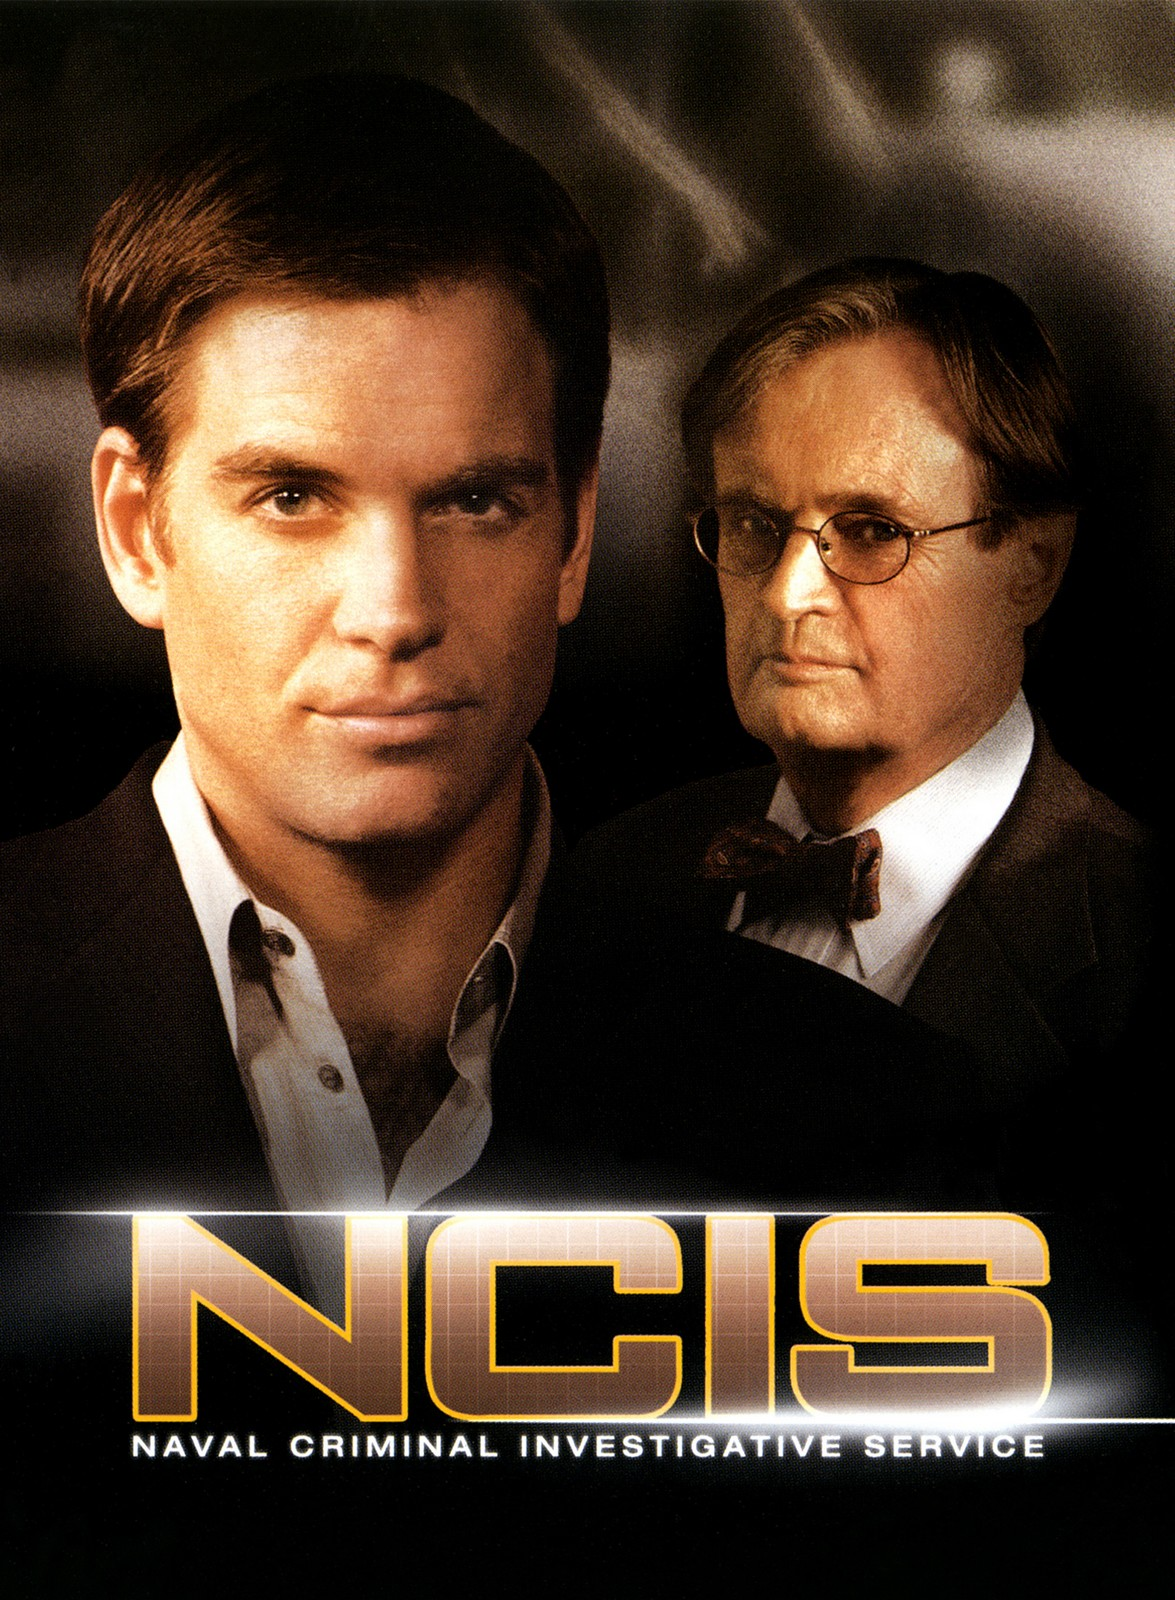 Pancho Demmings Wallpapers Navy NCIS Naval Criminal Investigative Service